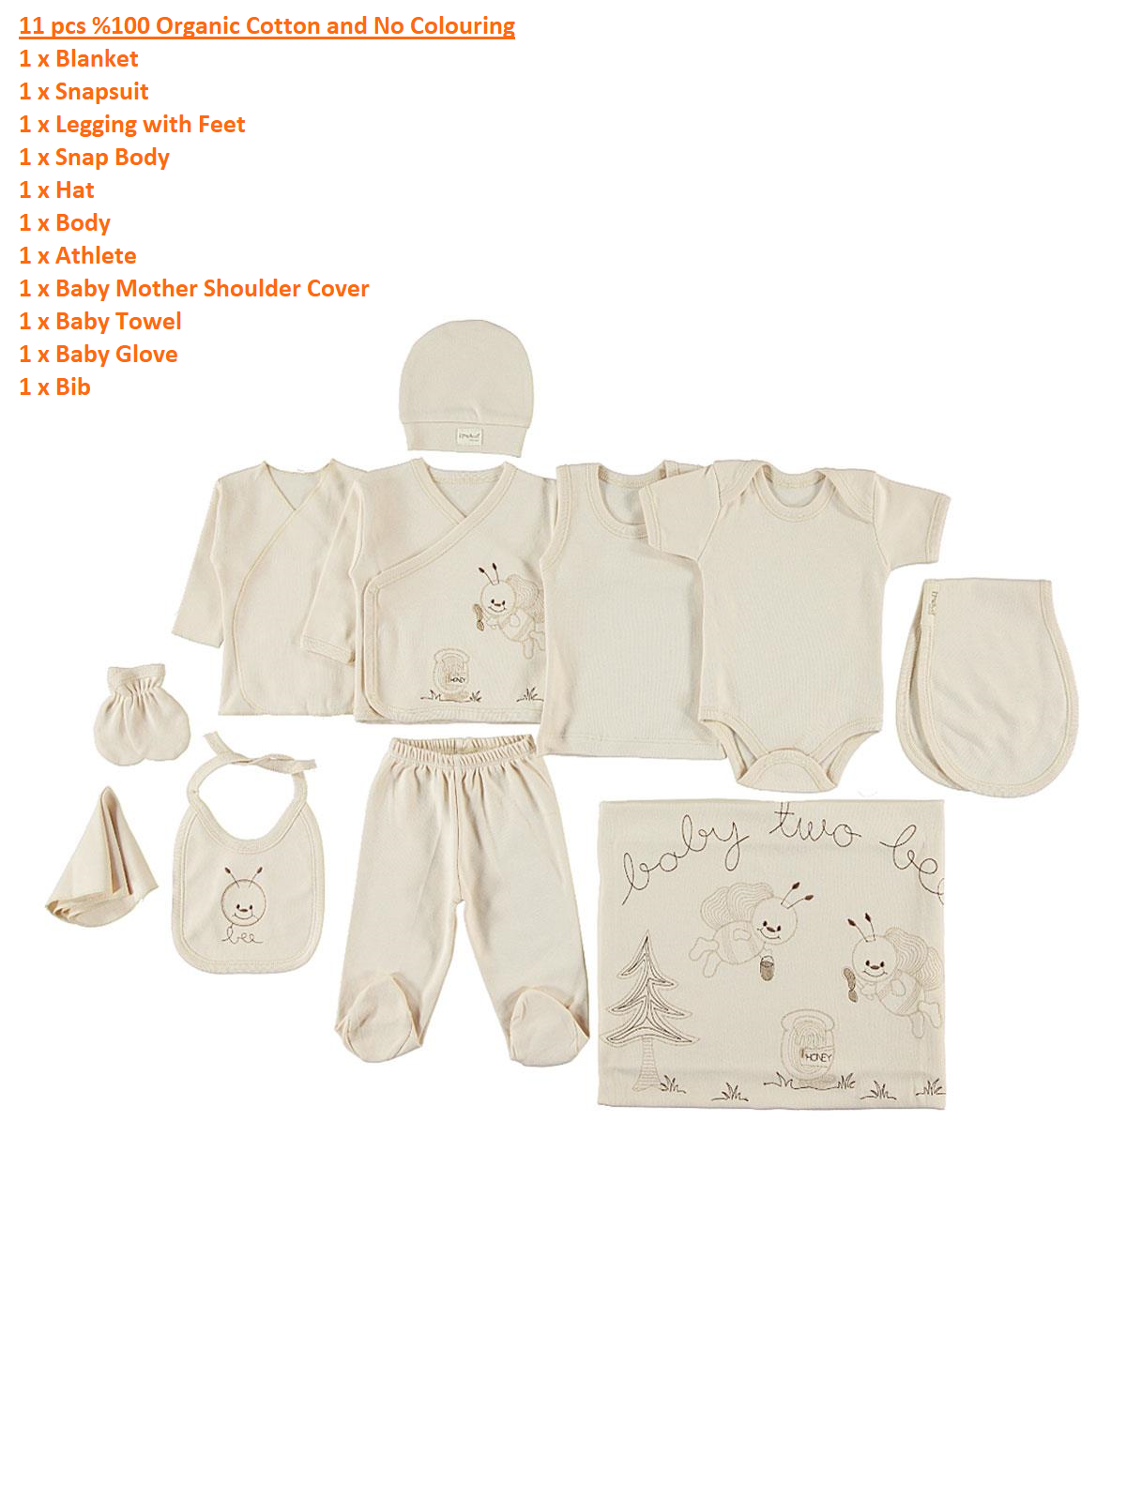 11Pcs & 8Pcs Silky Organic Newborn Hospital Pack Unisex Newborn Baby Clothes Infant Set Made In Turkey Fast Ship From Turkey